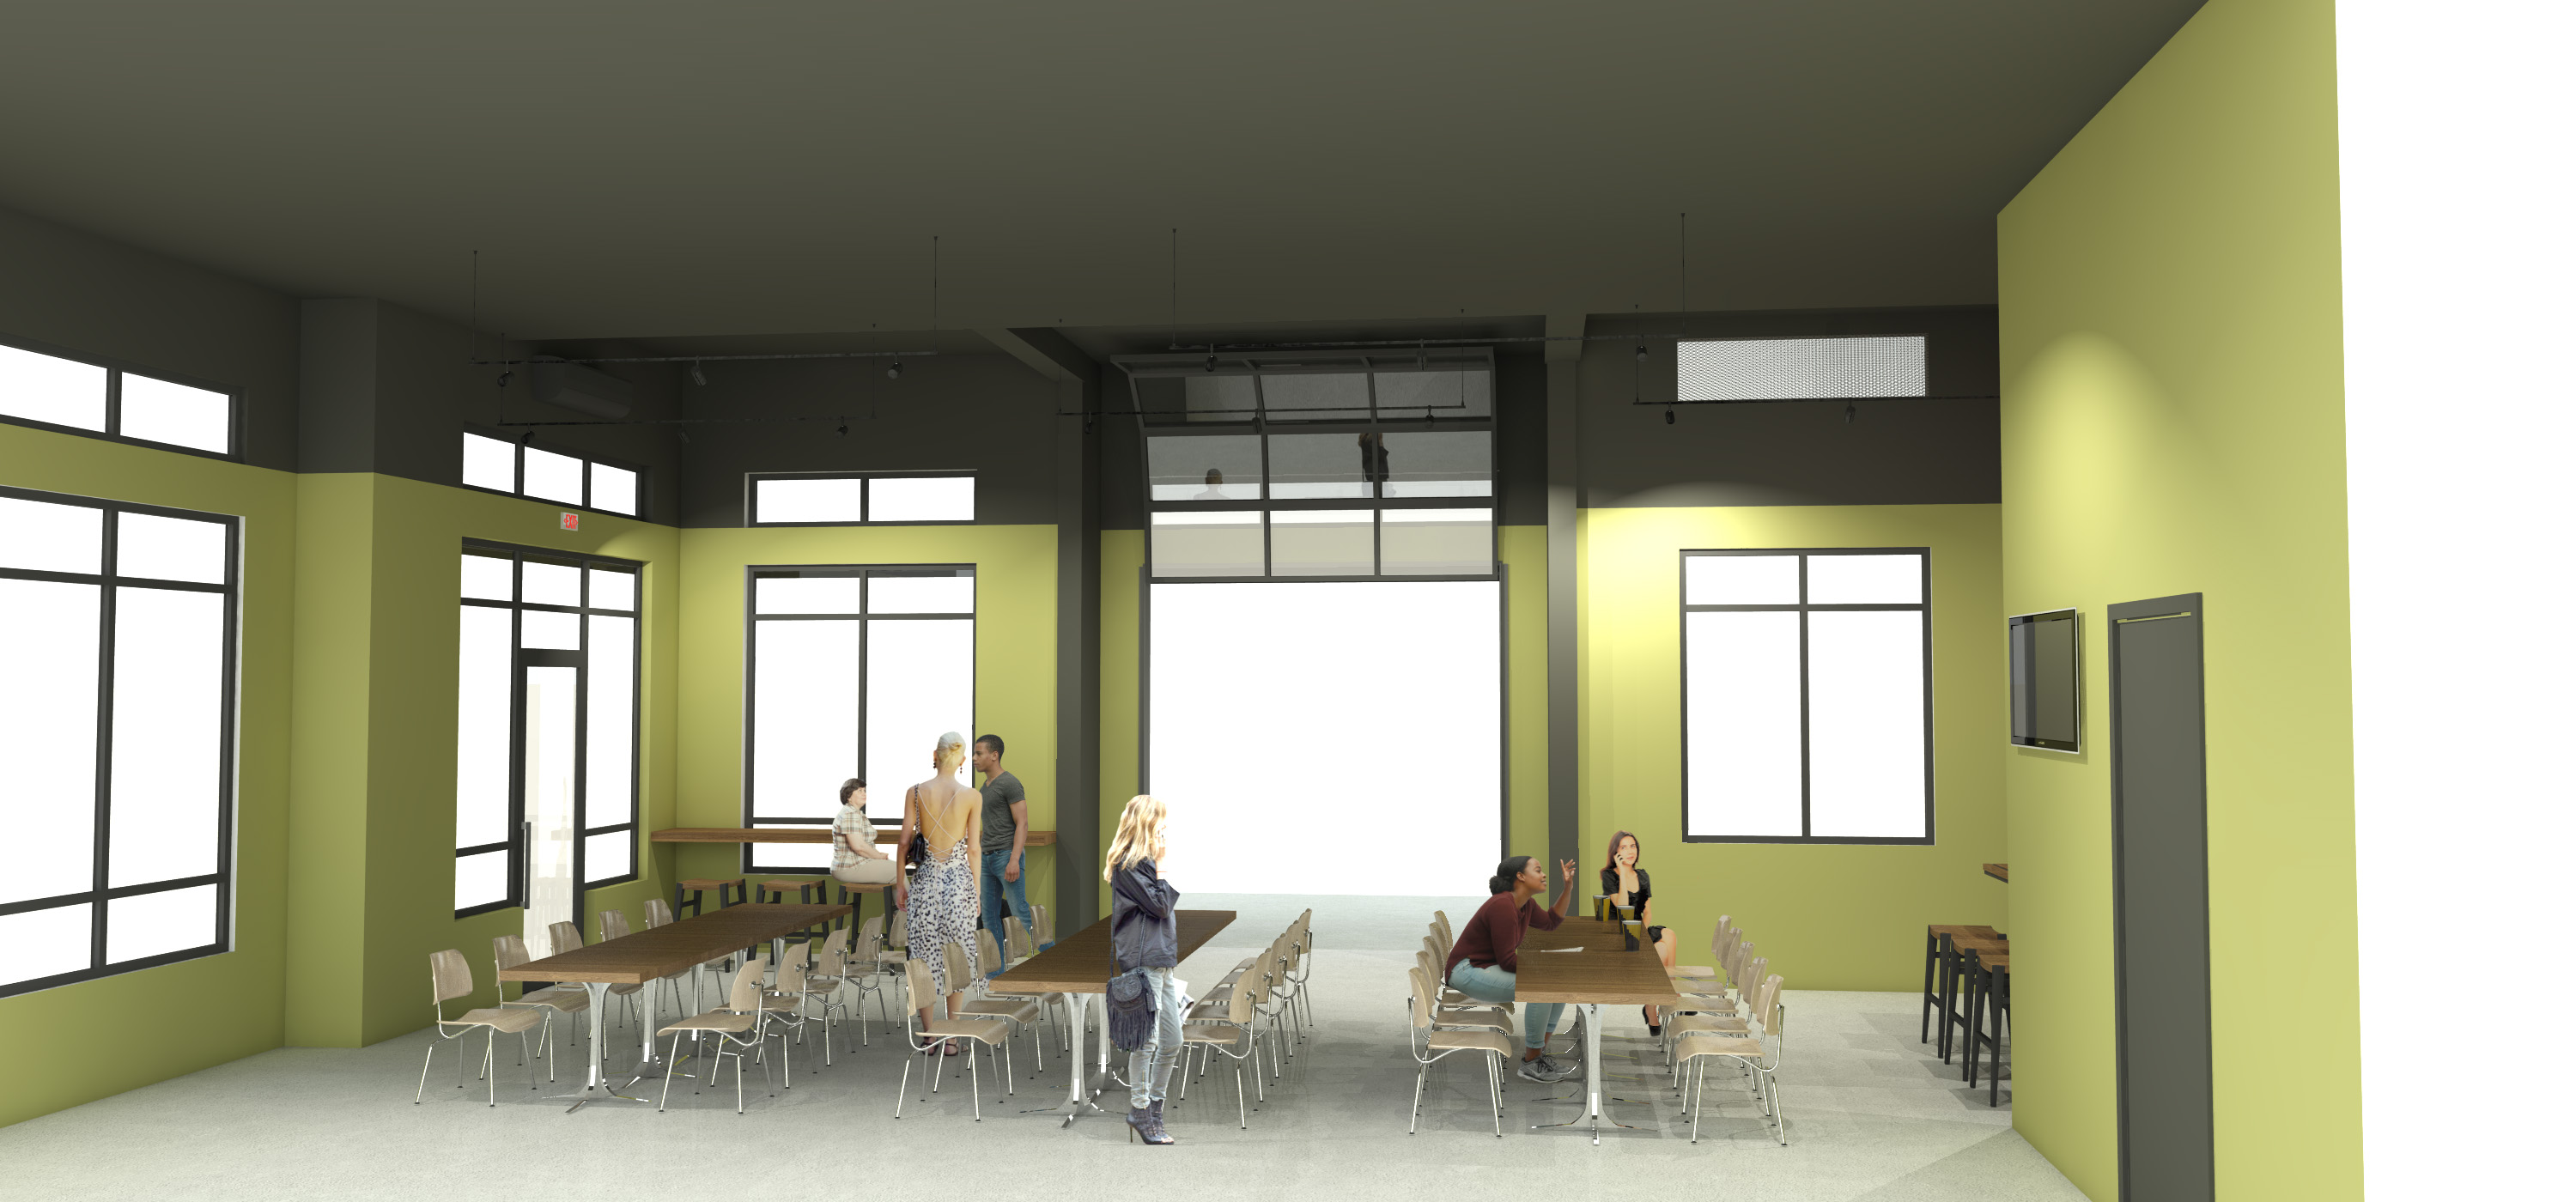 Portland Cider Co. Westside Pub inside and outside seating renderings by Steelhead Architecture